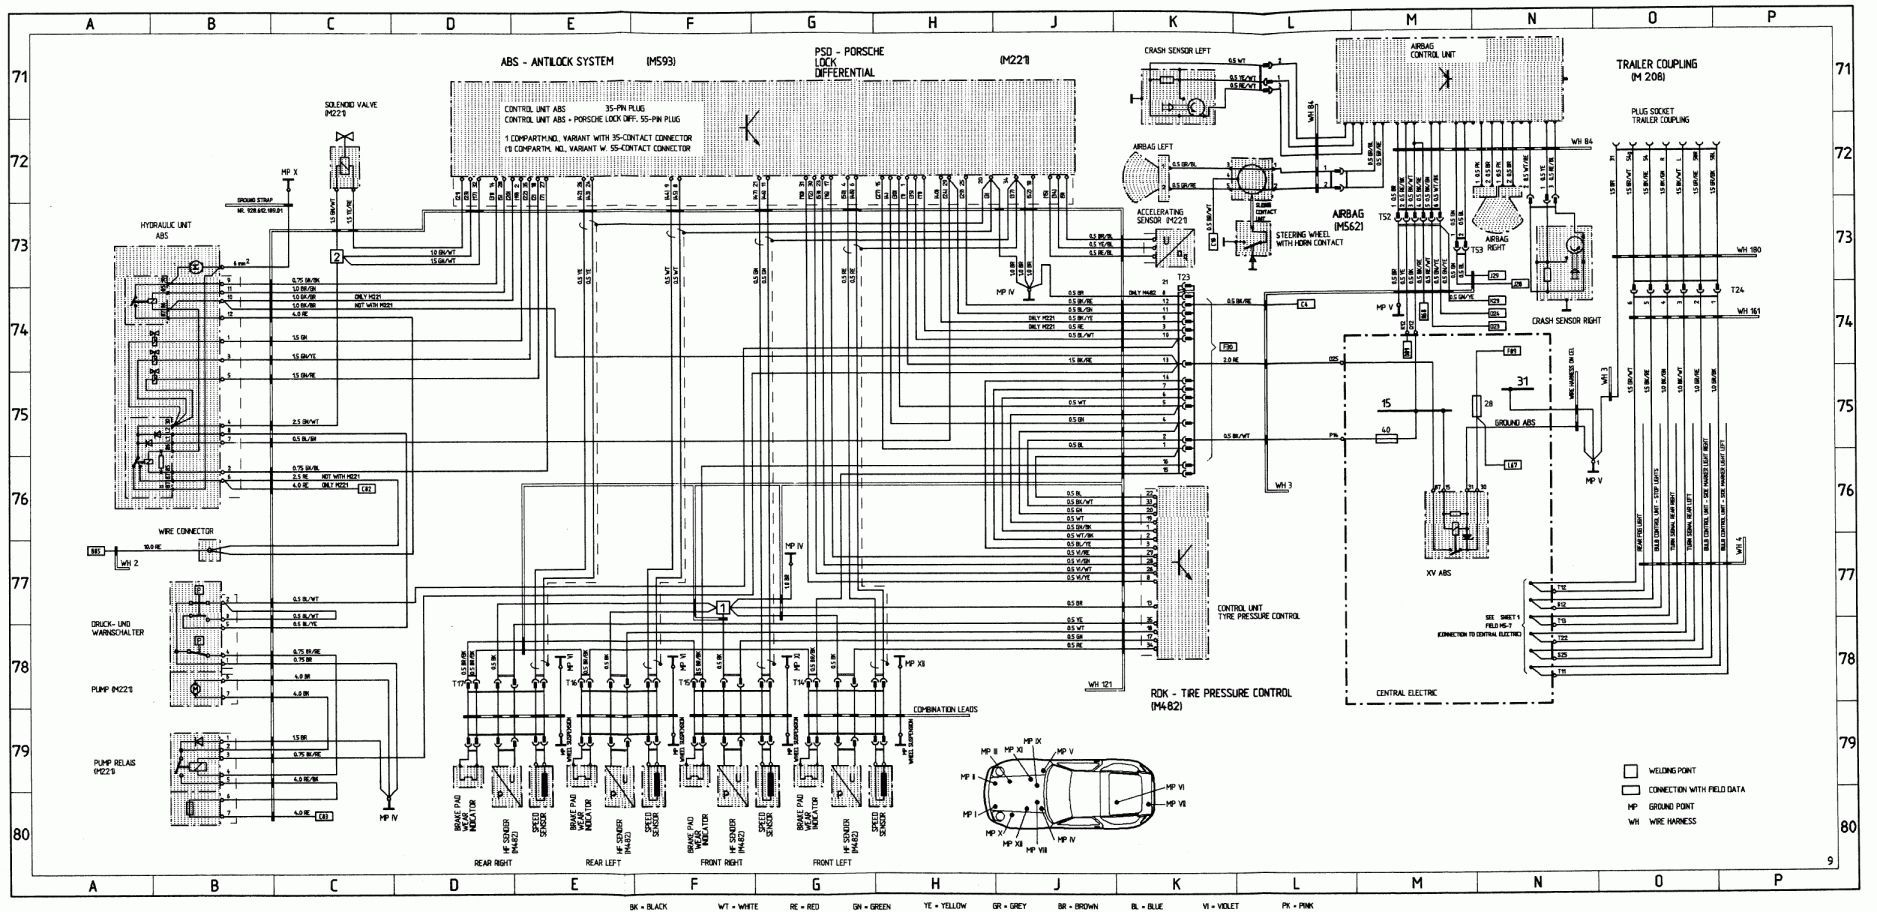 Bmw E46 Harman Kardon Wiring Diagram Electrical Wiring Diagram Bmw E46 Electrical Wiring